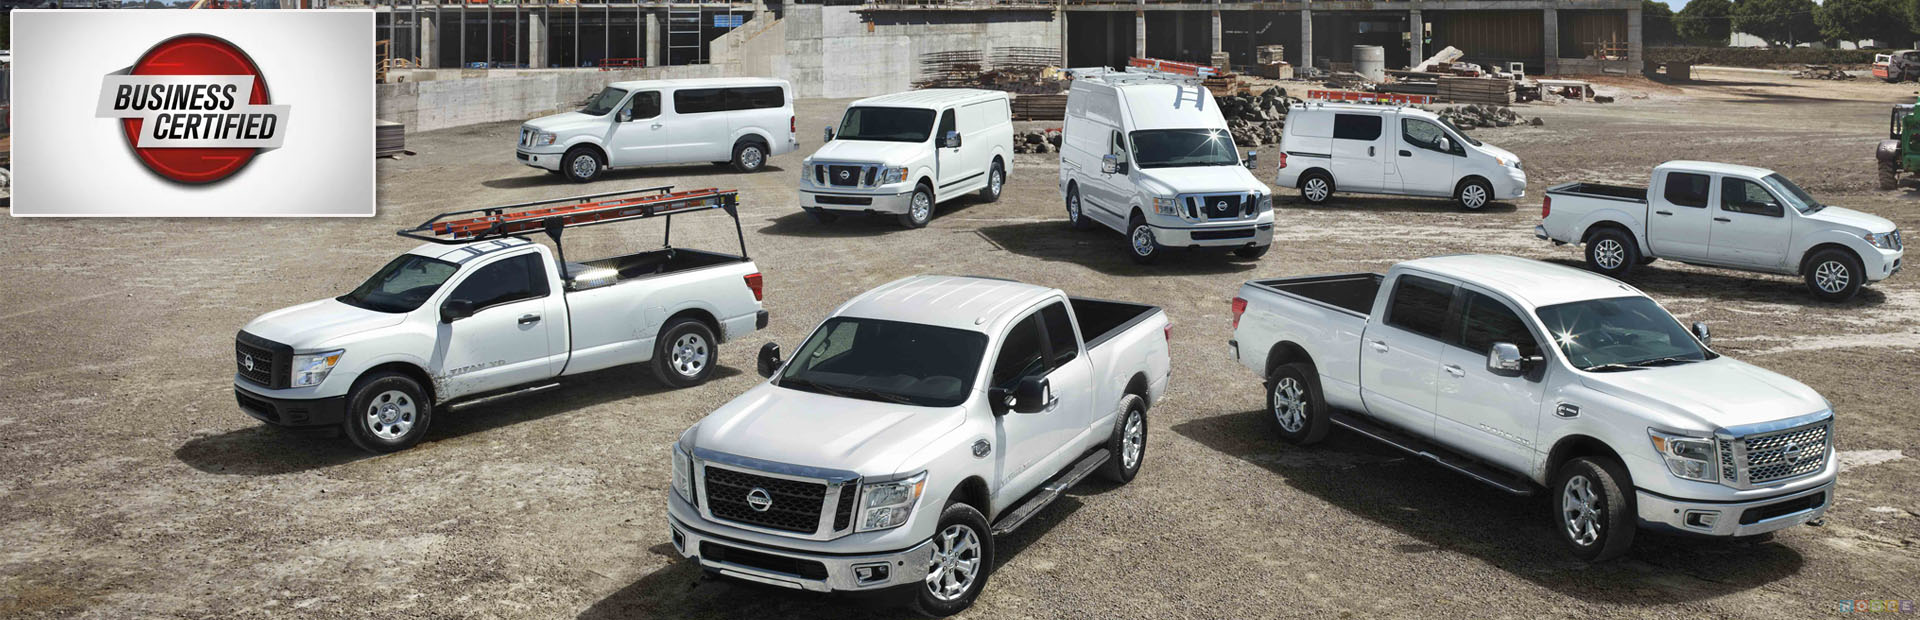 New City Nissan >> New City Nissan Commercial Vehicles Nissan Business Certified Dealer